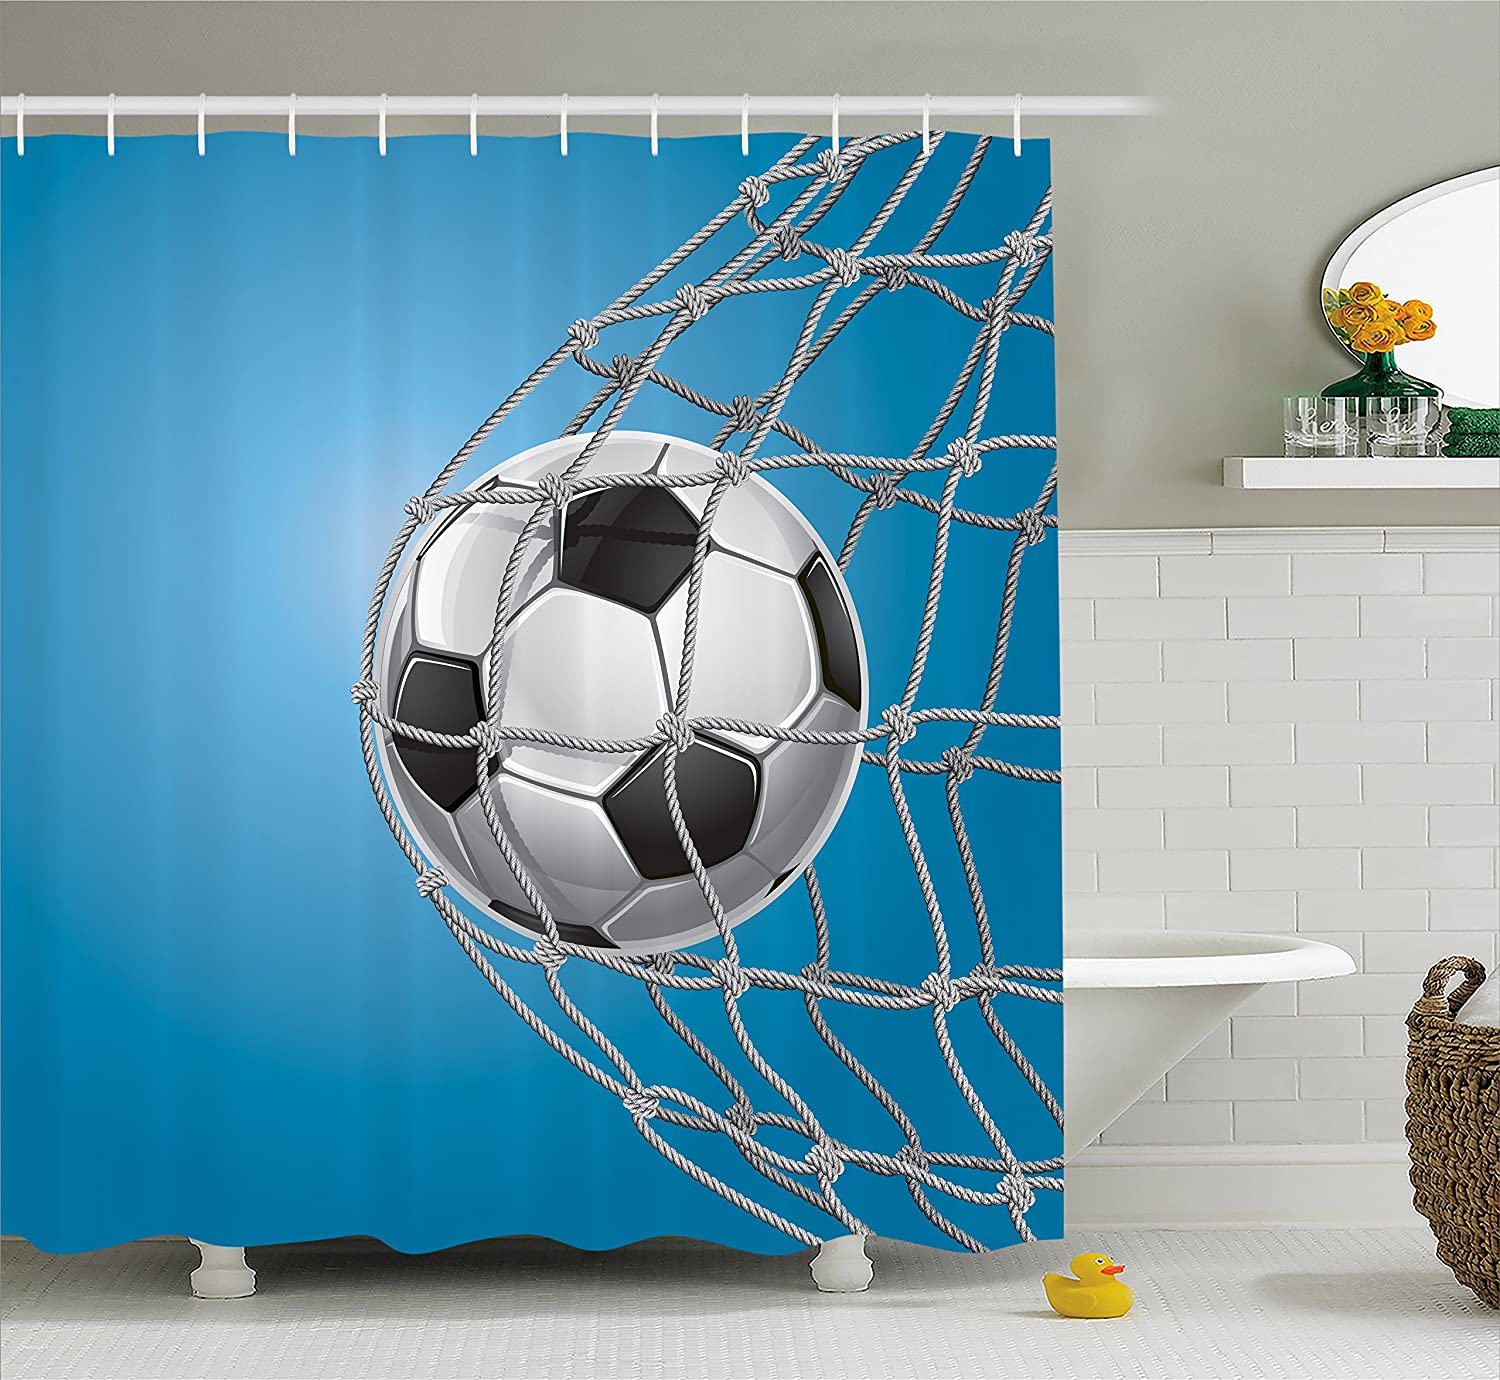 Ambesonne Soccer Shower Curtain Goal Football In Net Entertainment Playing For Winning Active Lifestyle Fabric Bathroom Decor Set With Hooks 70 Inches